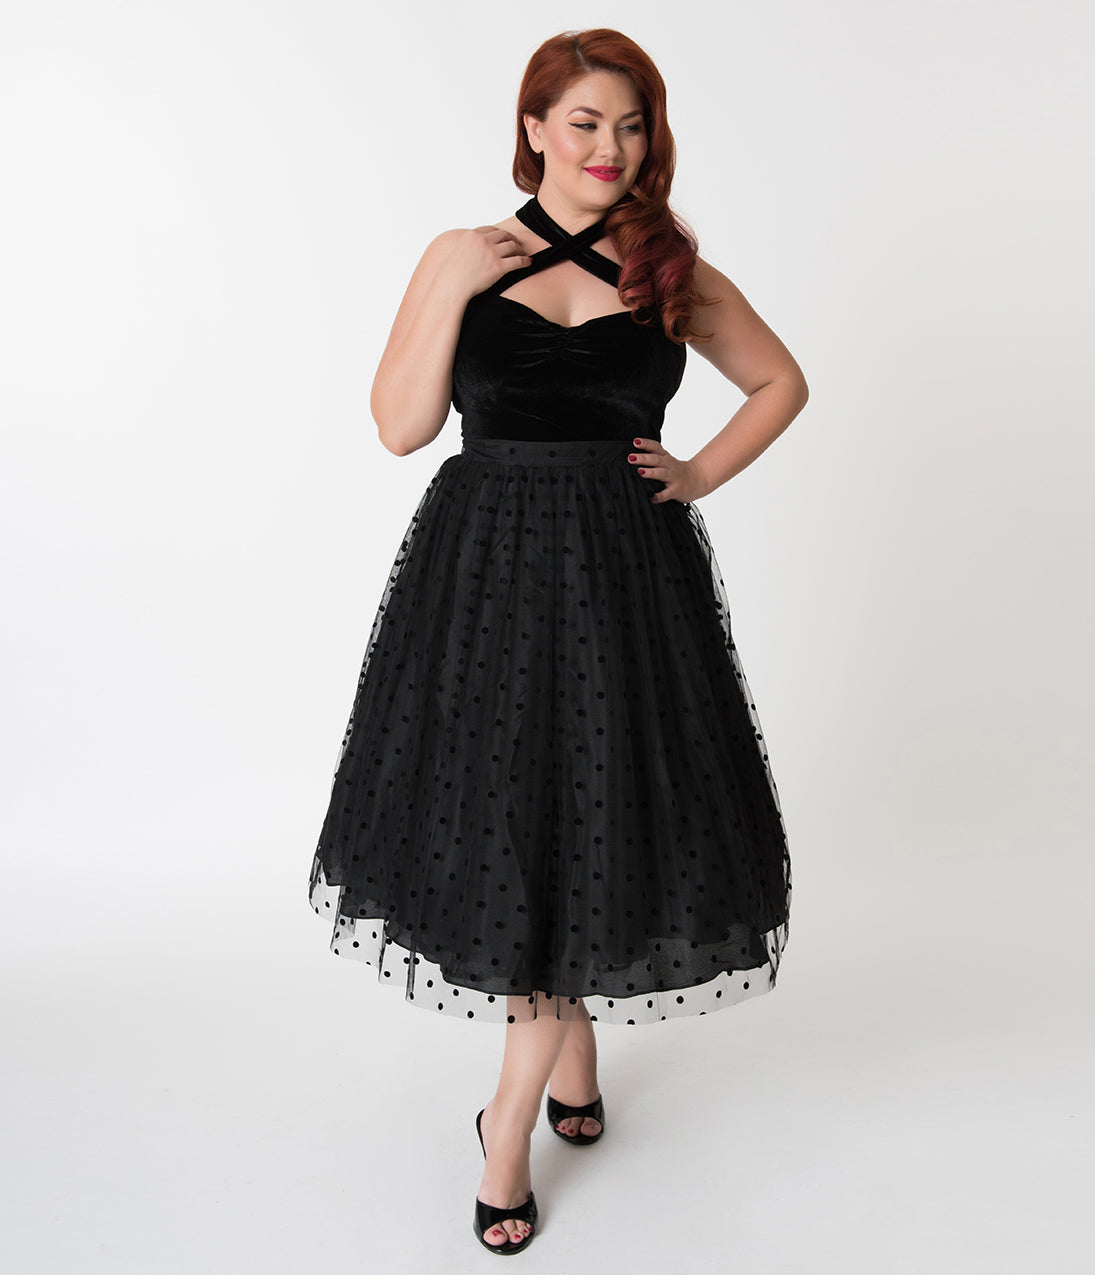 1950s Plus Size Fashion & Clothing History 1950S Style Plus Size Black Velvet Polka Dot Mesh Skirt $52.00 AT vintagedancer.com